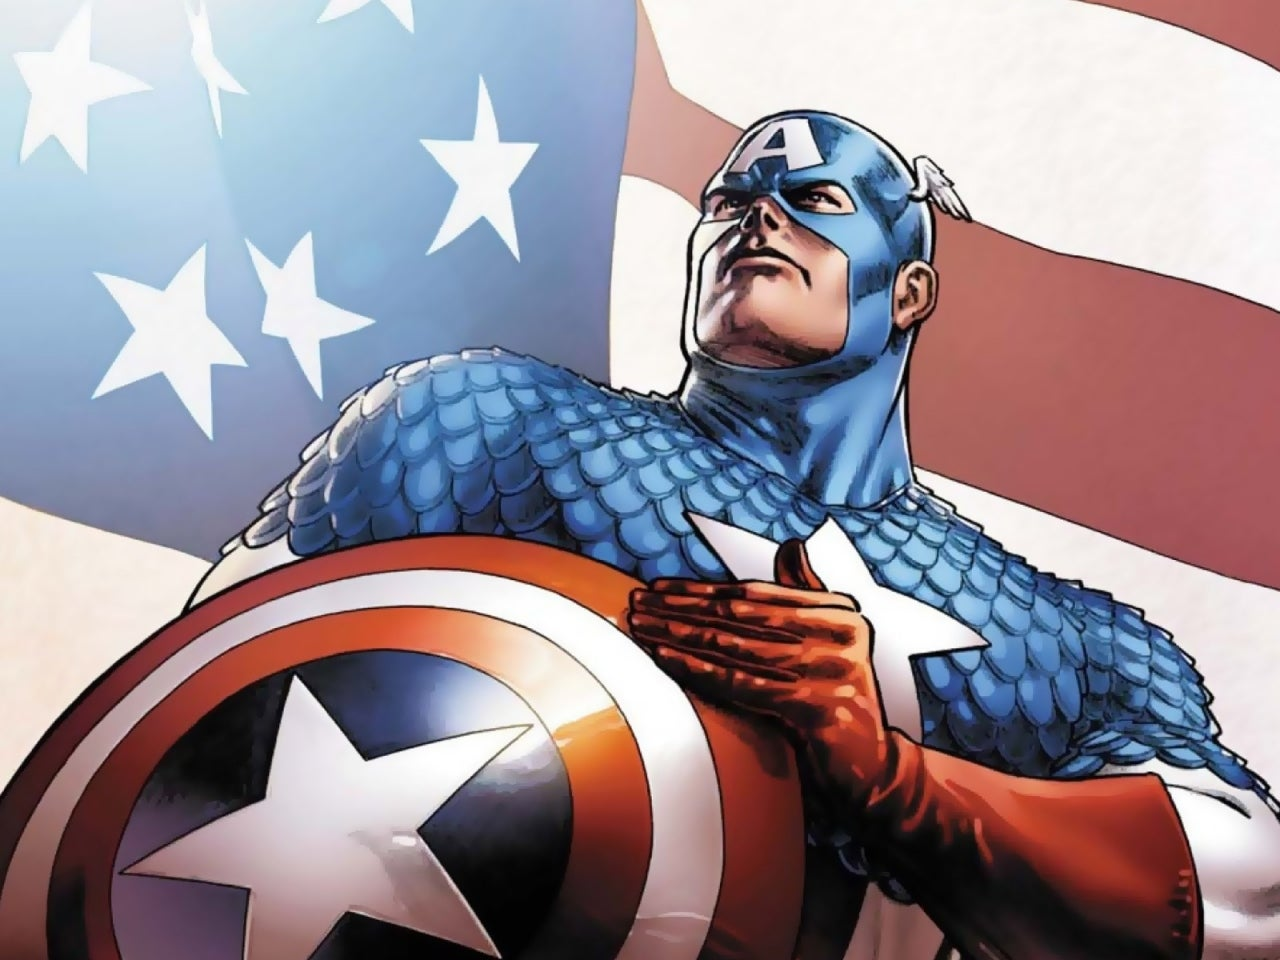 Marvel comics troll fans with implausible captain america twist the independent - Image captain america ...